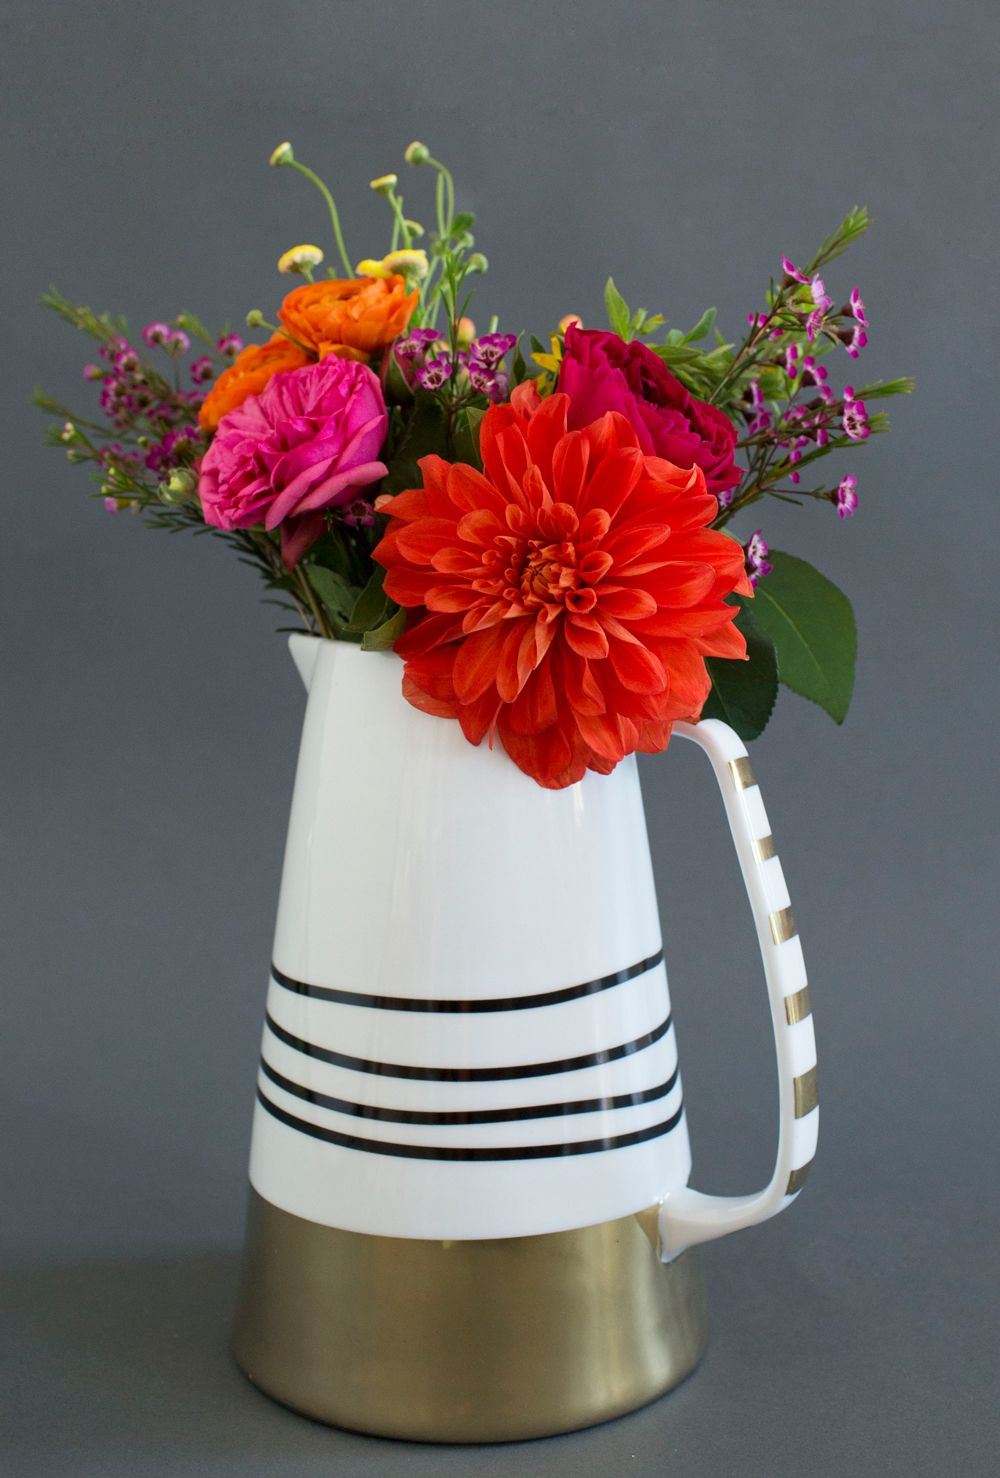 I love how a great pitcher doubles as a vase oh joy for target joy chos clever pitchervase at target reviewsmspy